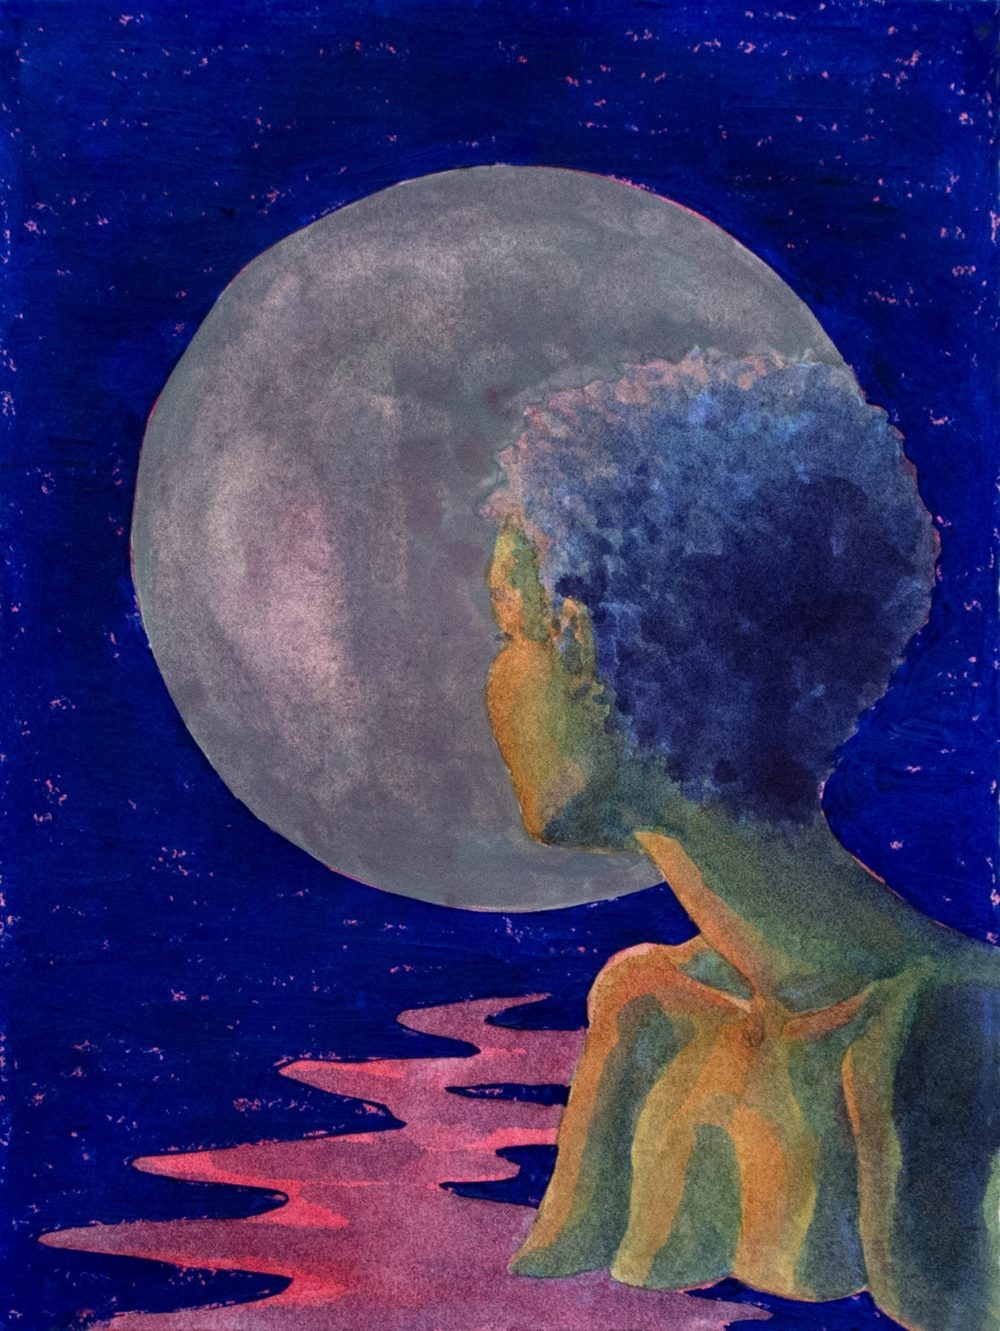 The bust of a person looking back towards a moon against a dark blue background.